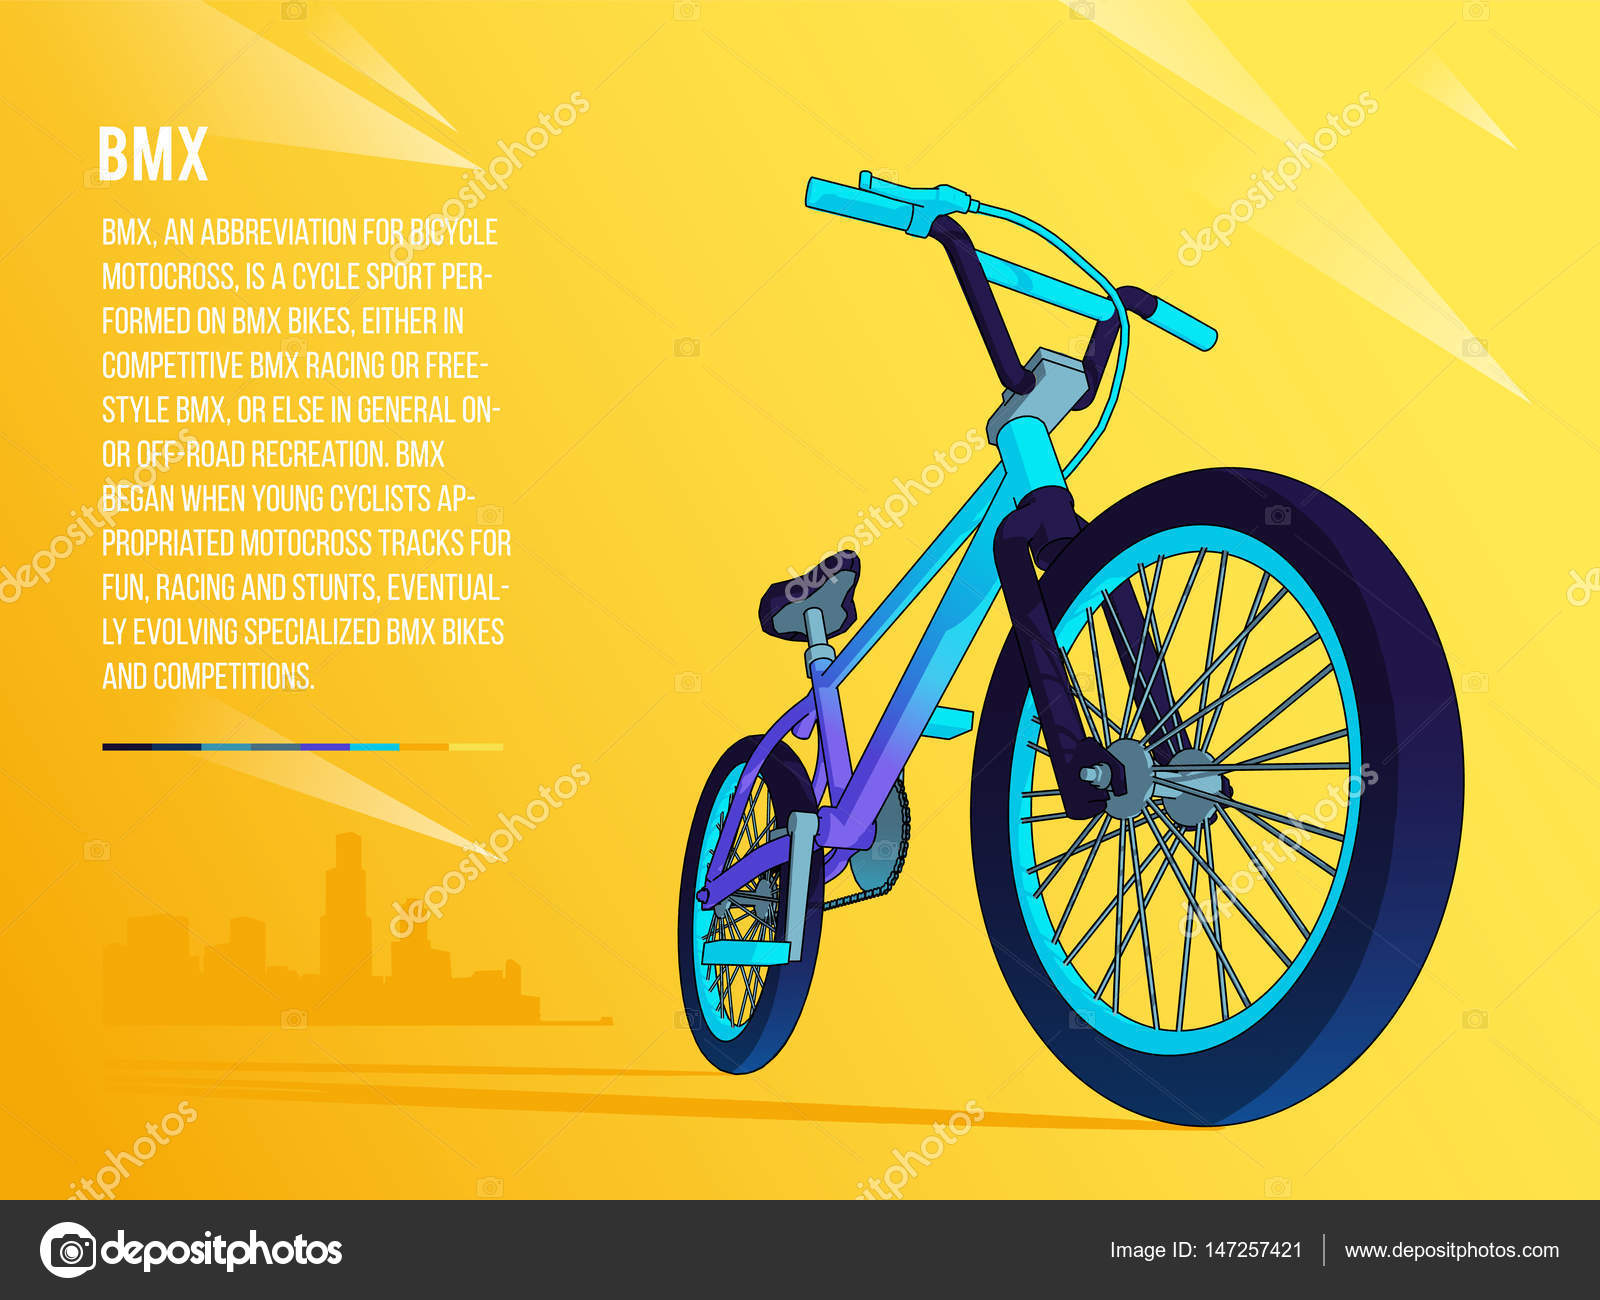 Freestyle bike bmx on city background two wheeled arbon bicycle freestyle bike bmx on city background two wheeled arbon bicycle line vector illustration voltagebd Image collections